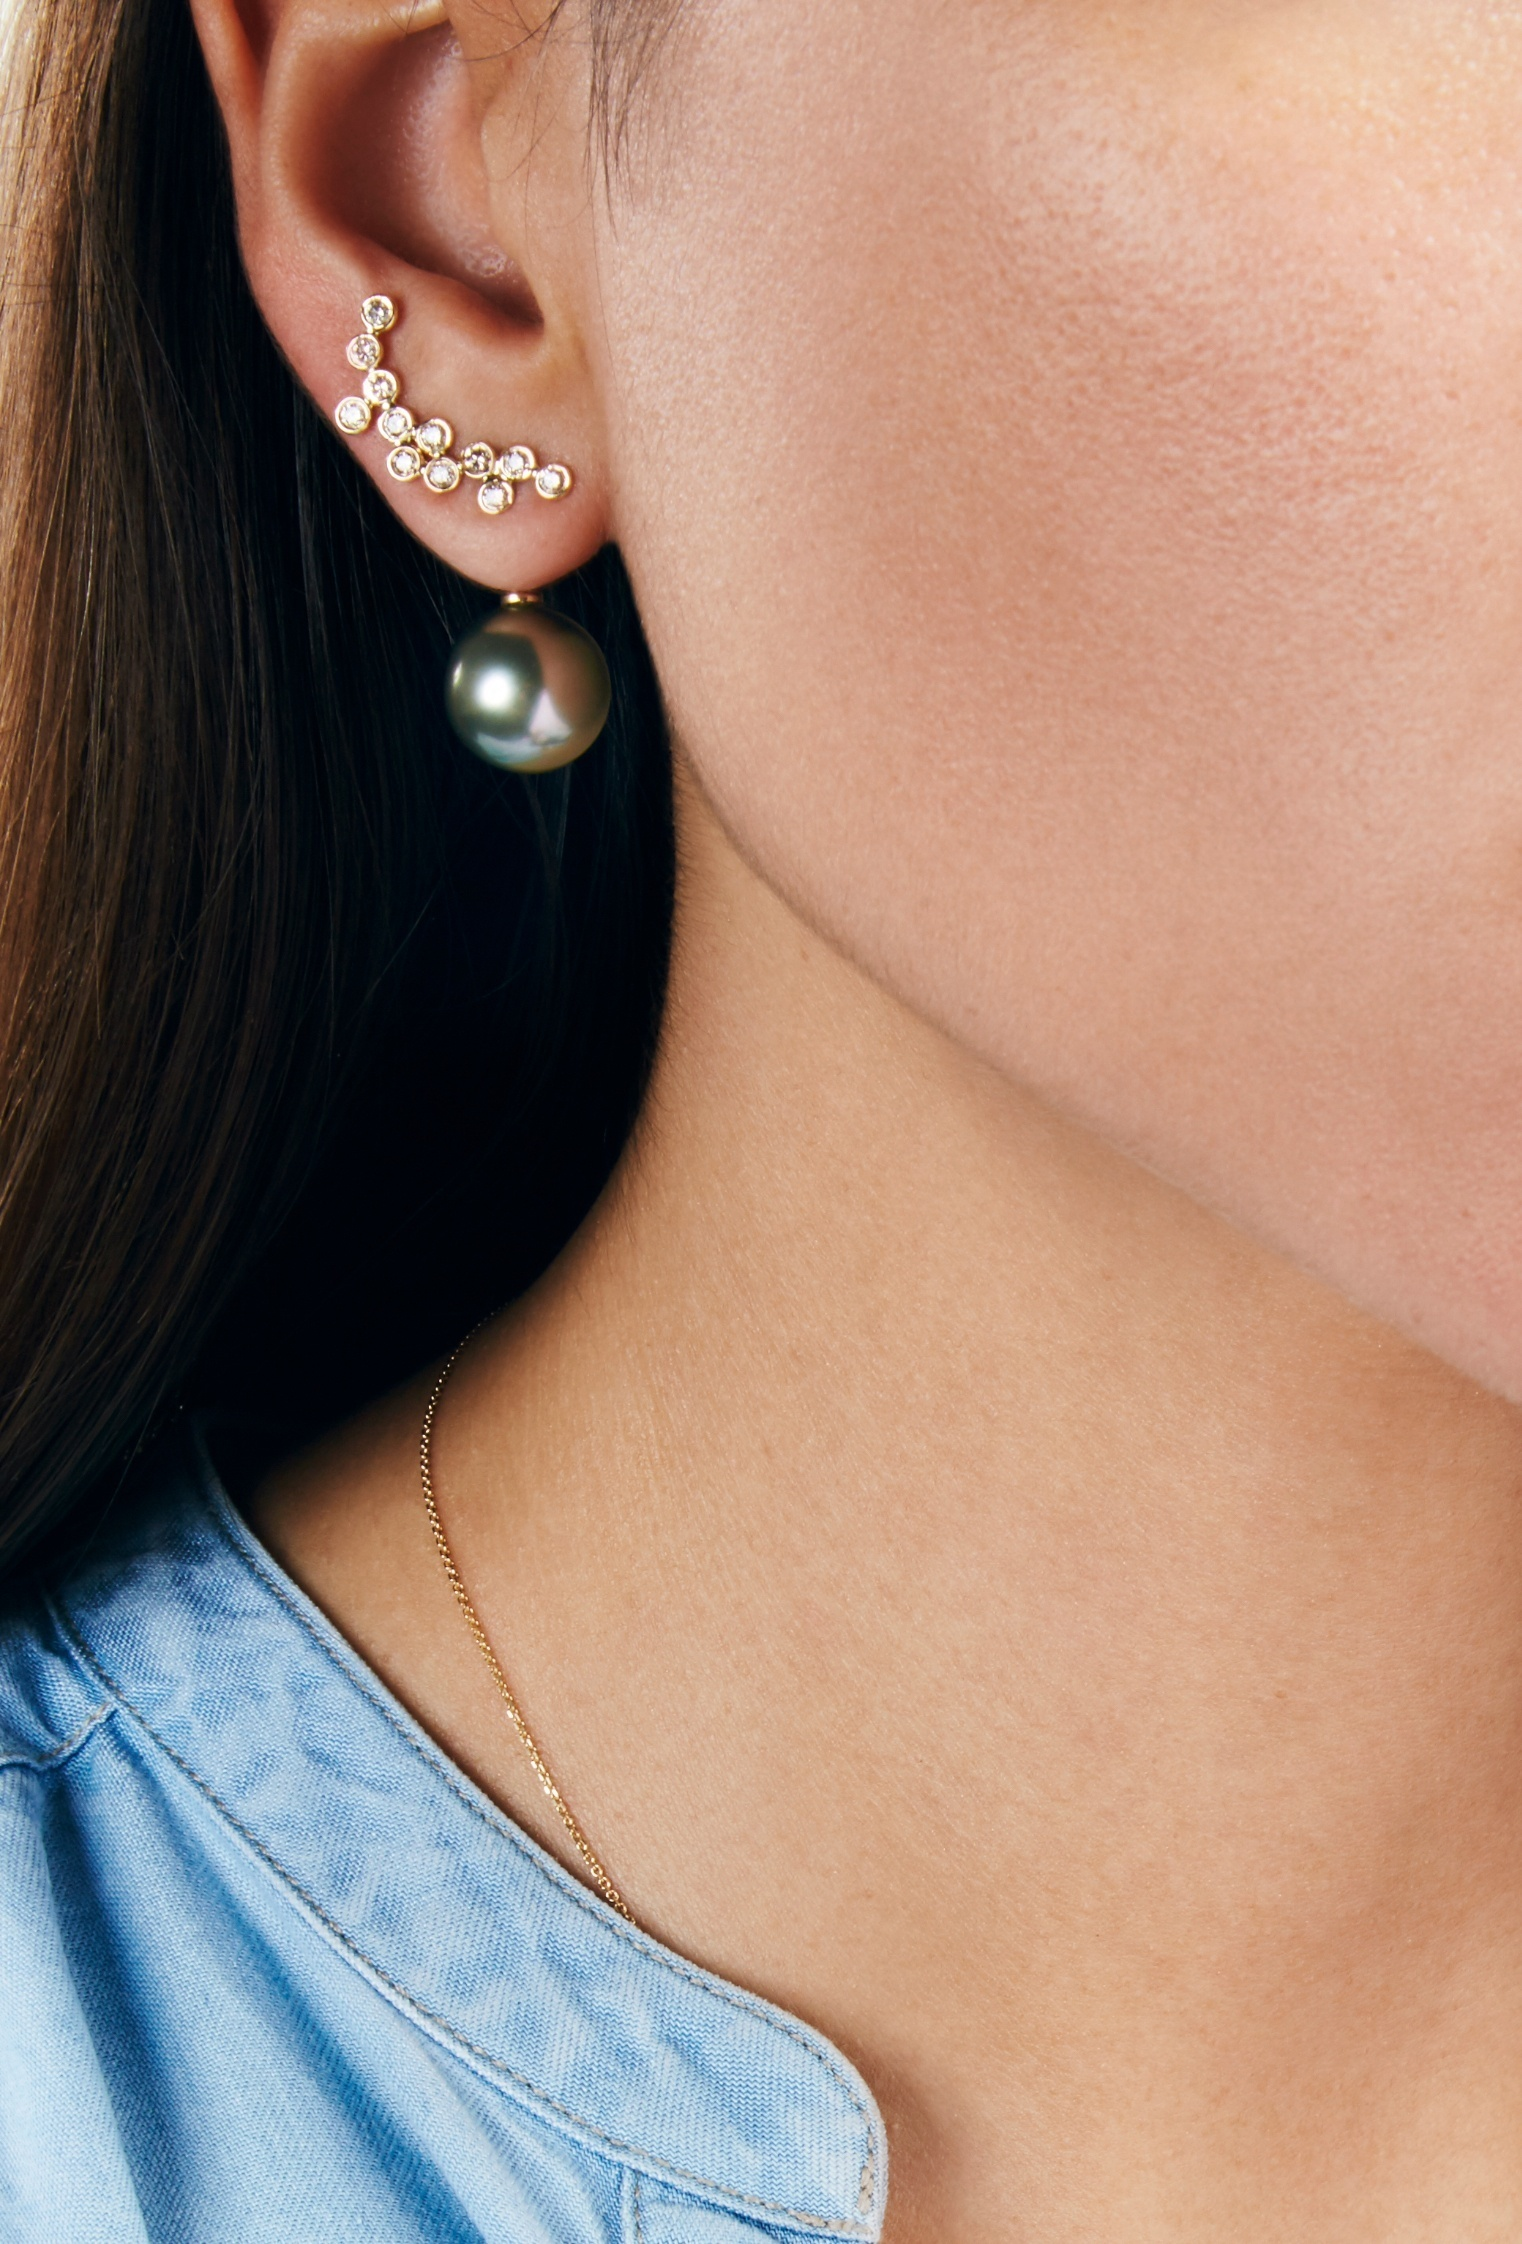 Nuit Etoilee Earrings